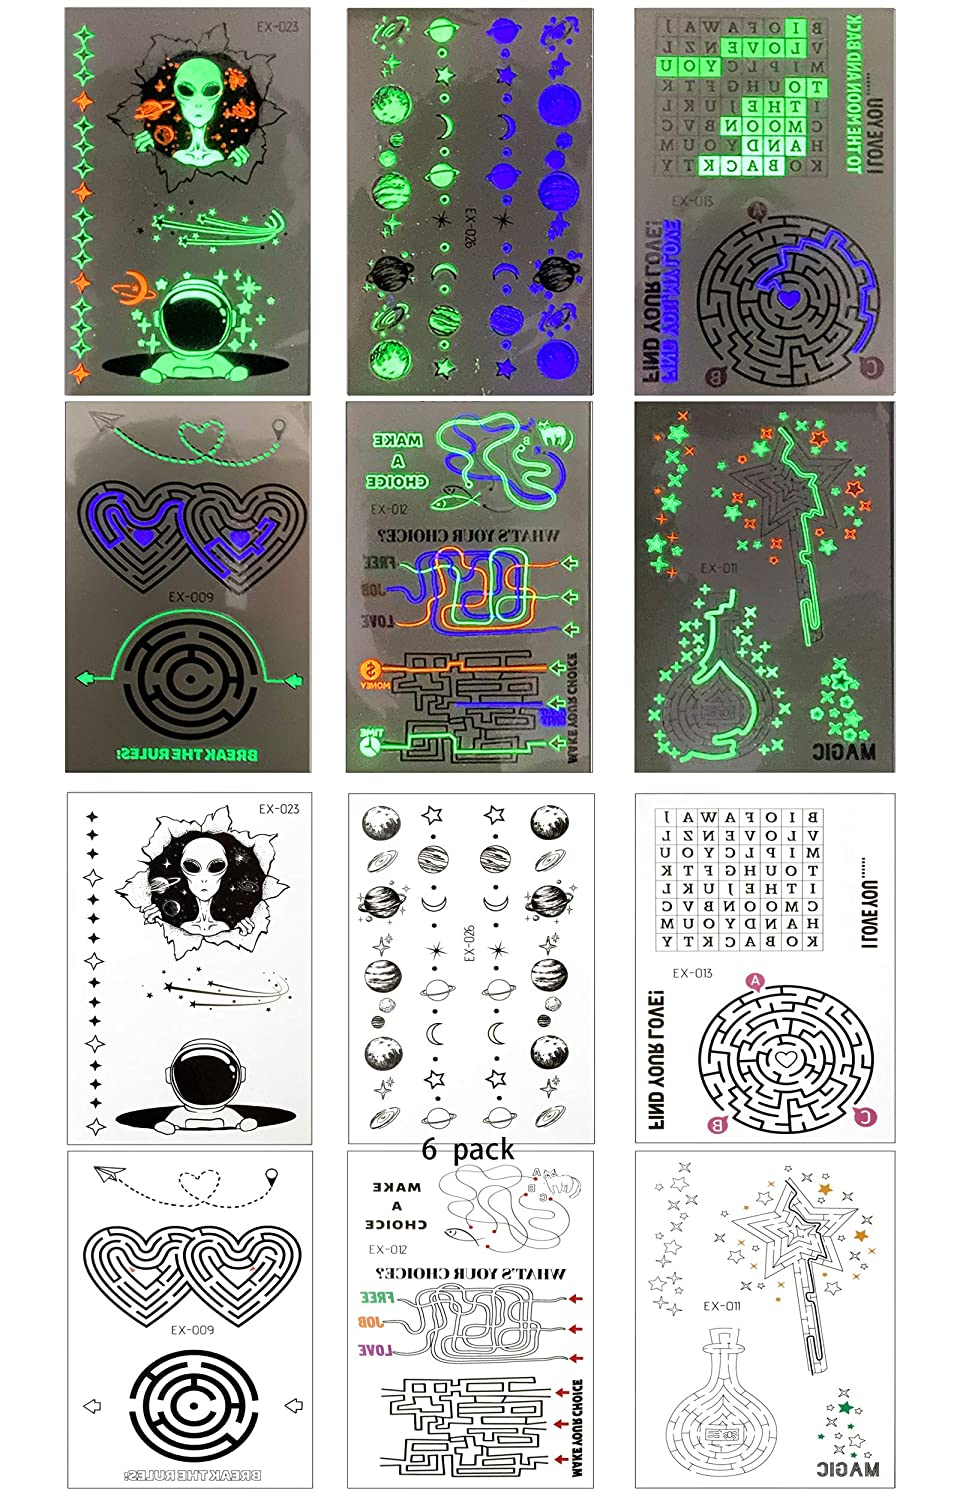 6 Sheets of luminous tattoo stickers suitable for men and women, fluorescent tattoo Fake Tattoo is suitable for parties, festivals, clubs, luminous party accessories, festival decoration DIY